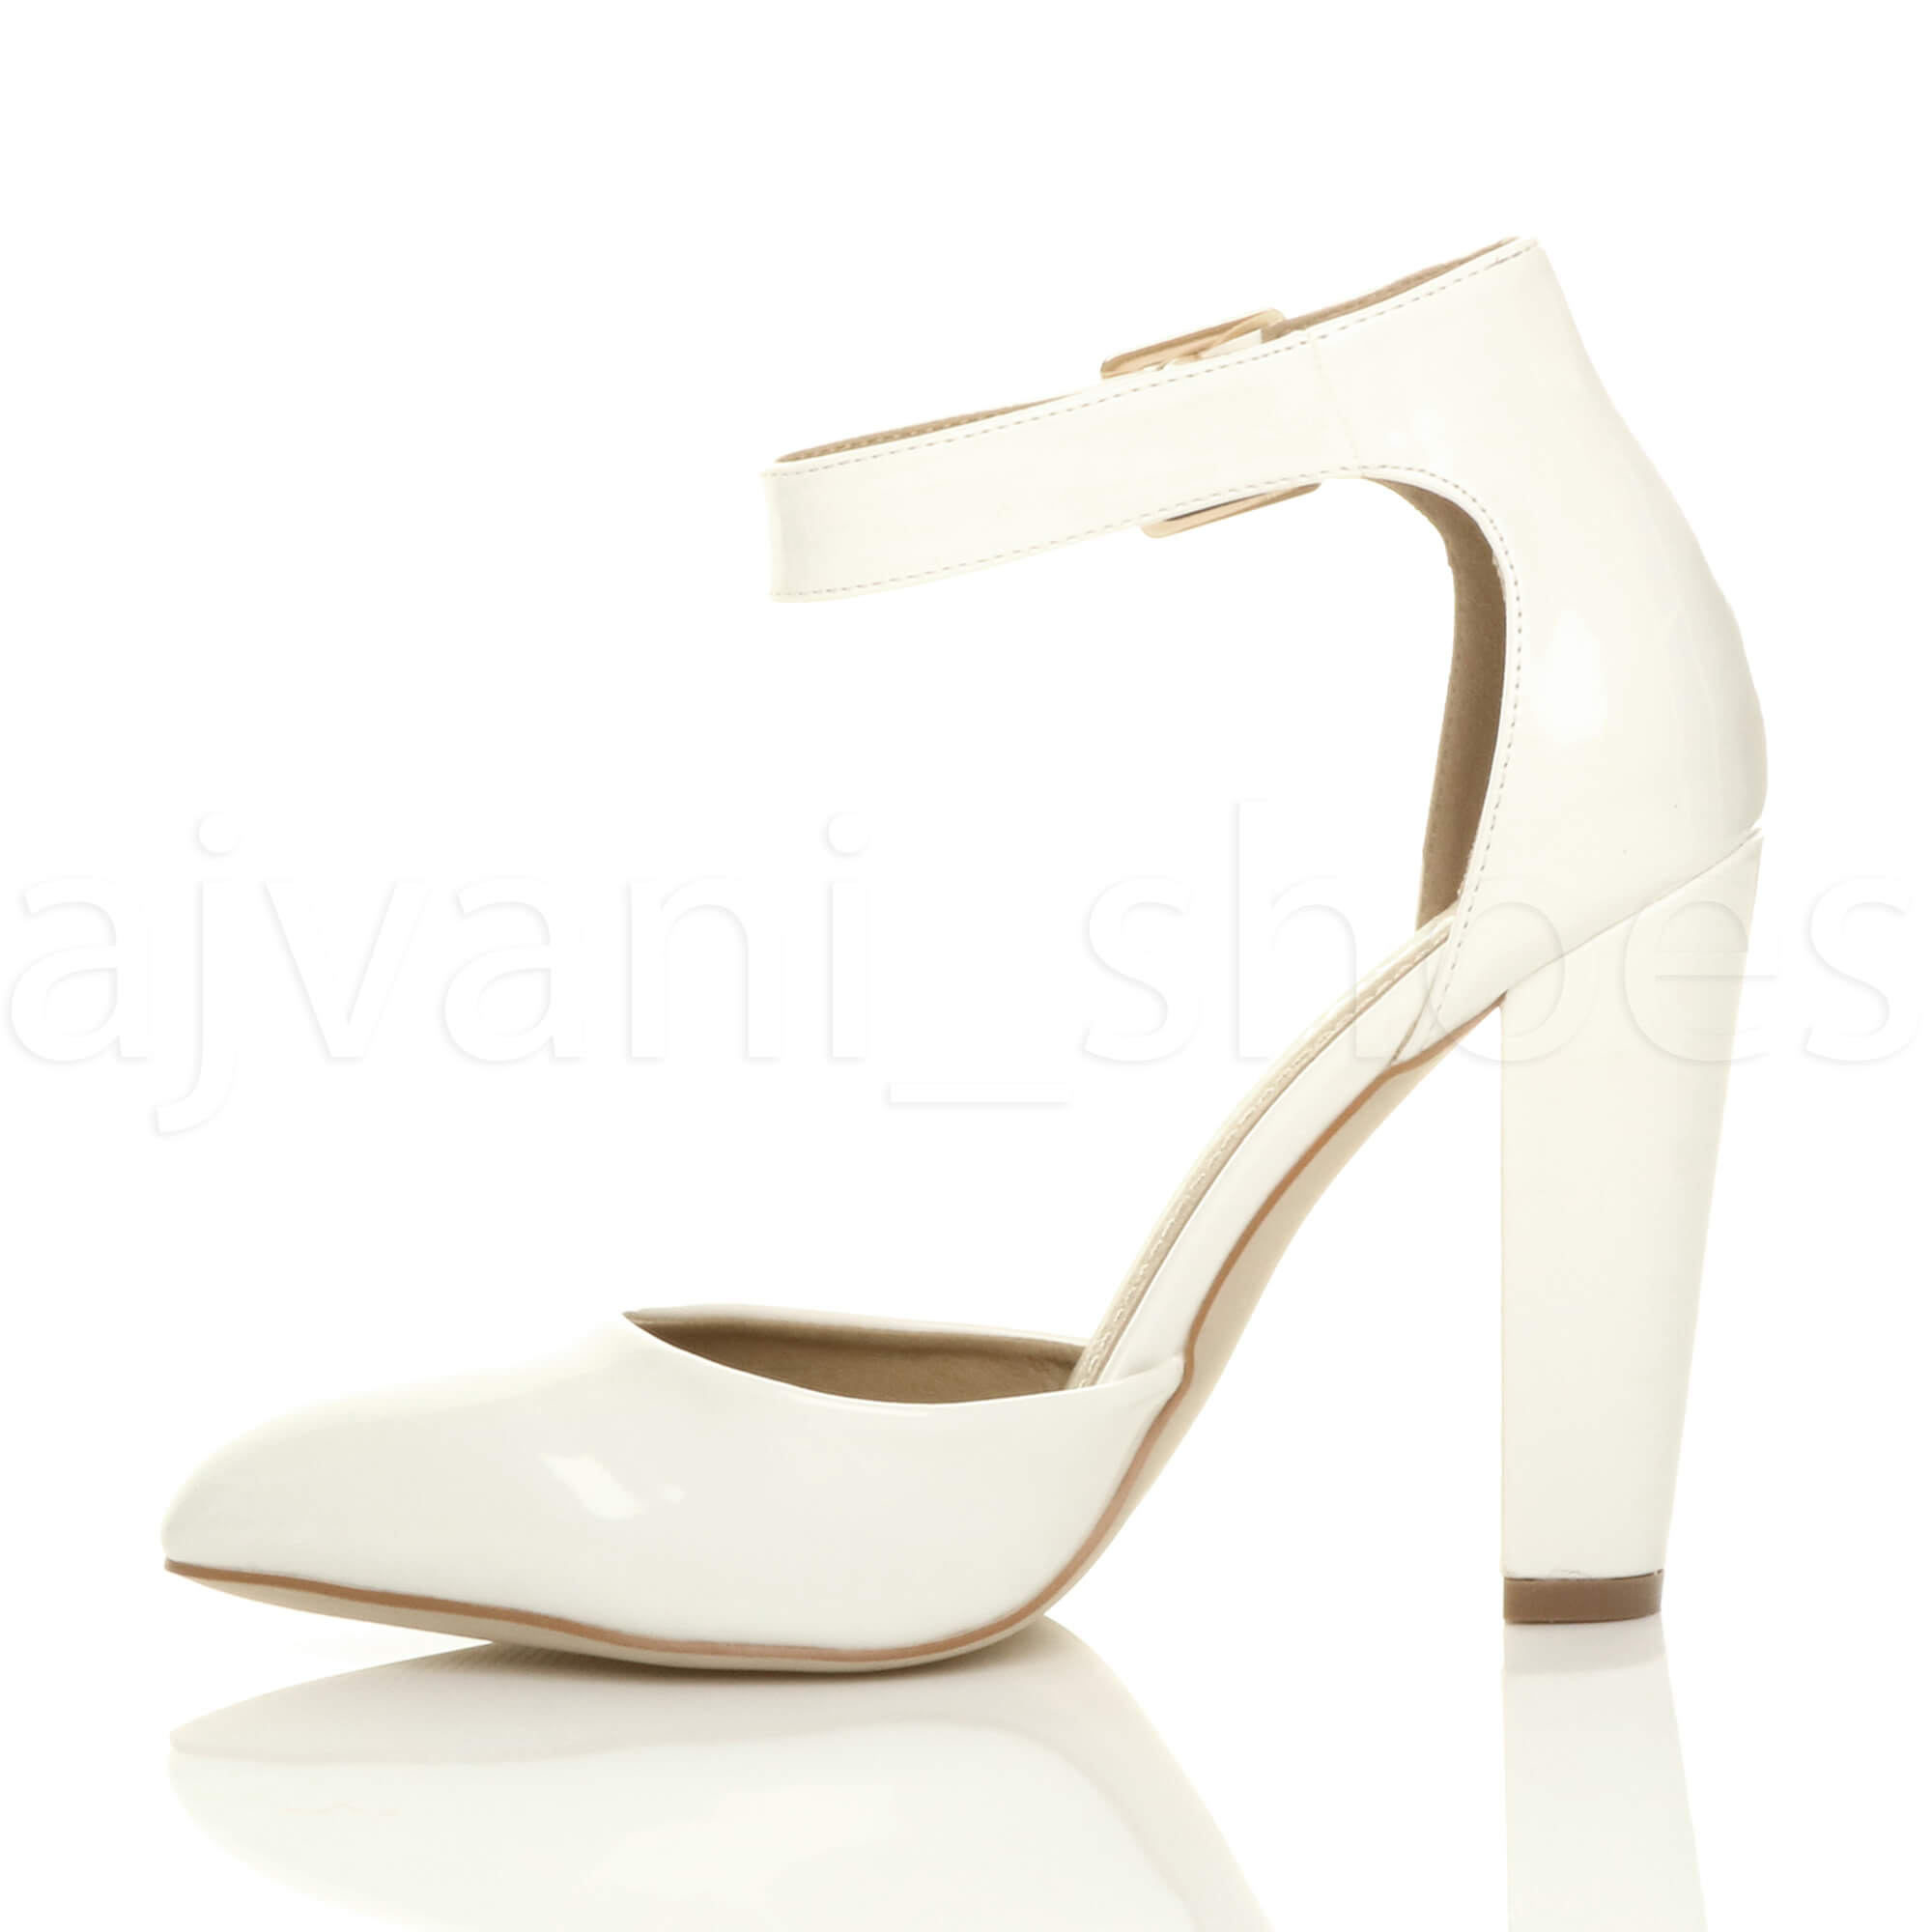 WOMENS-LADIES-HIGH-BLOCK-HEEL-ANKLE-STRAP-BUCKLE-POINTED-COURT-SHOES-SIZE thumbnail 130